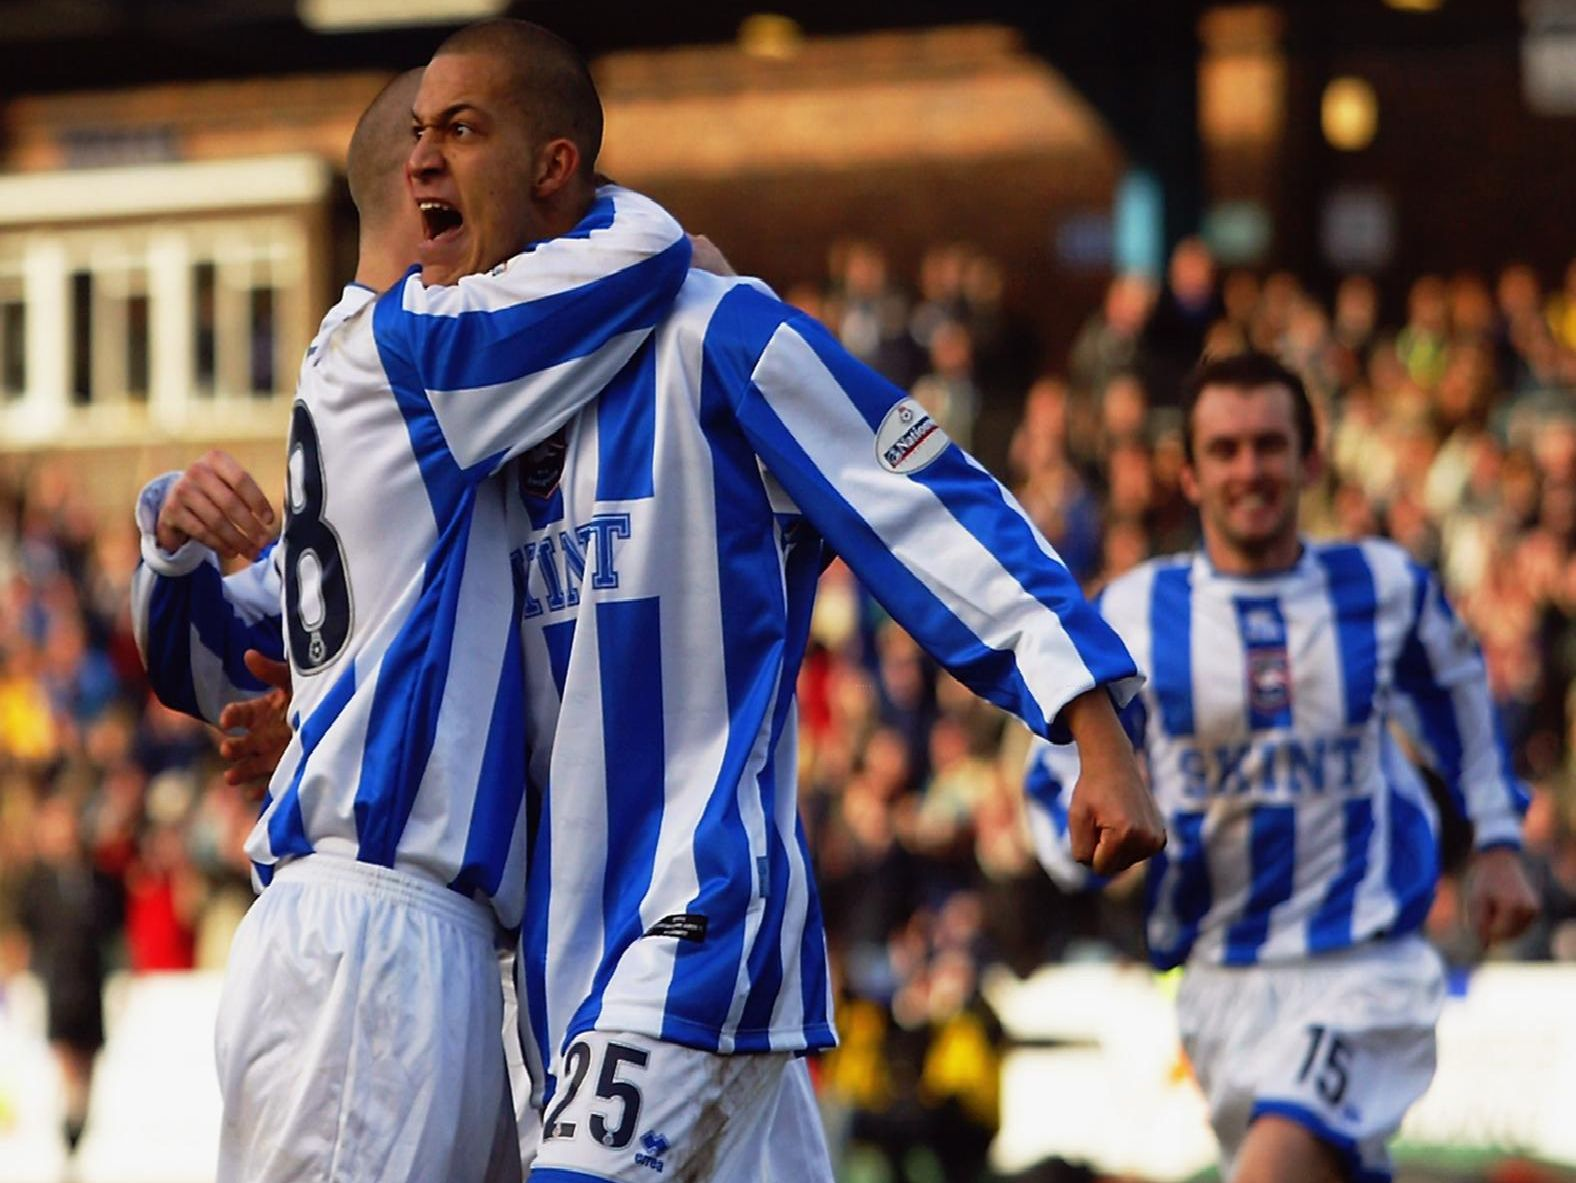 Bobby Zamora celebrates a goal during his first spell with Brighton.